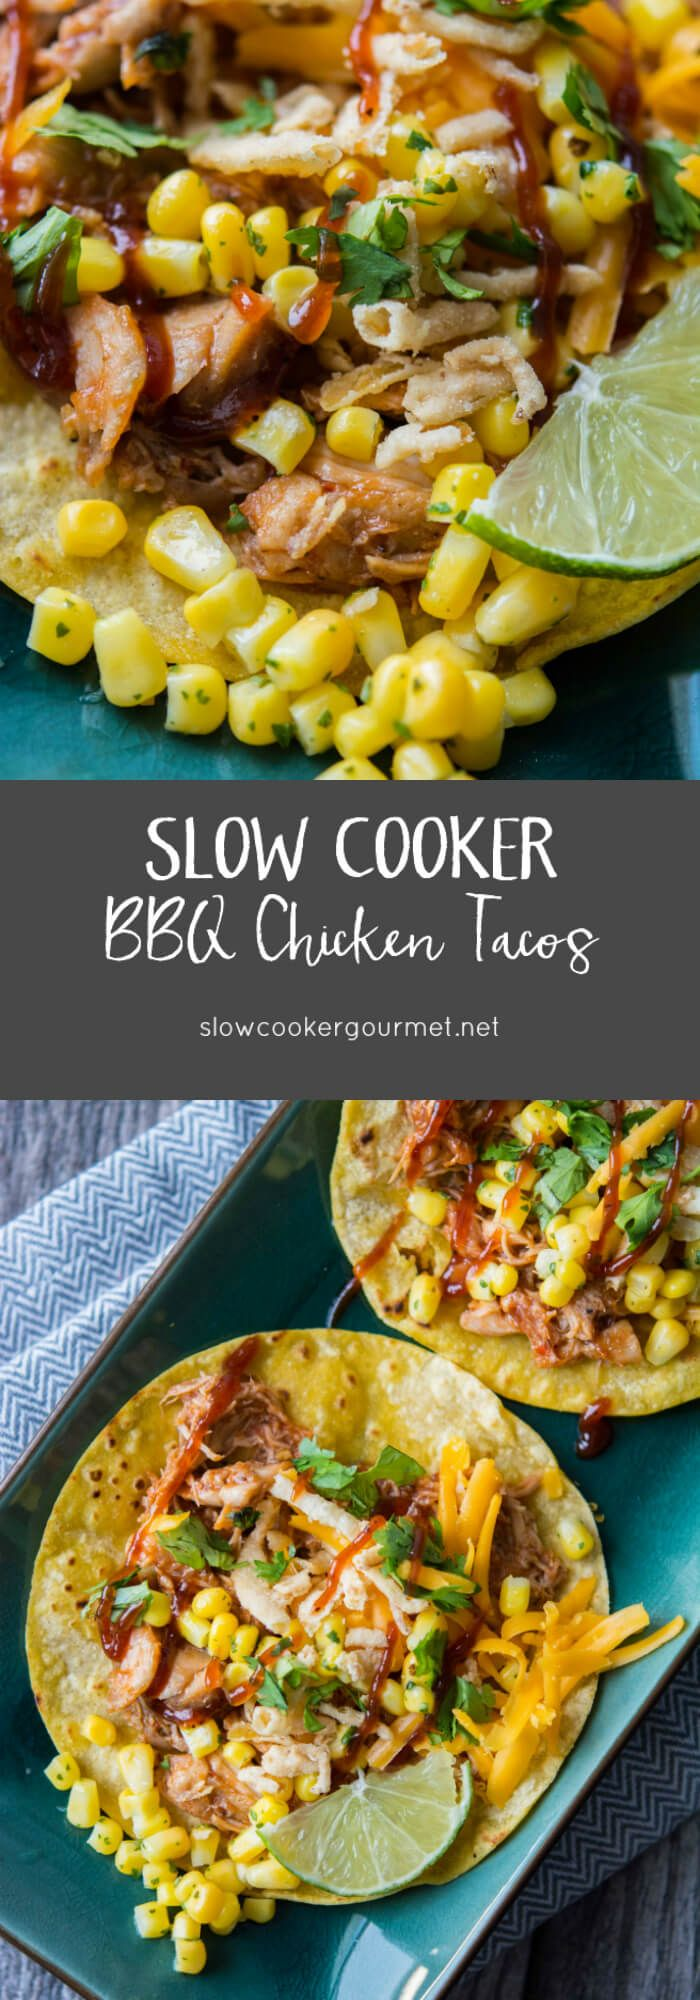 slow_cooker_bbq_chicken_tacos_longpin